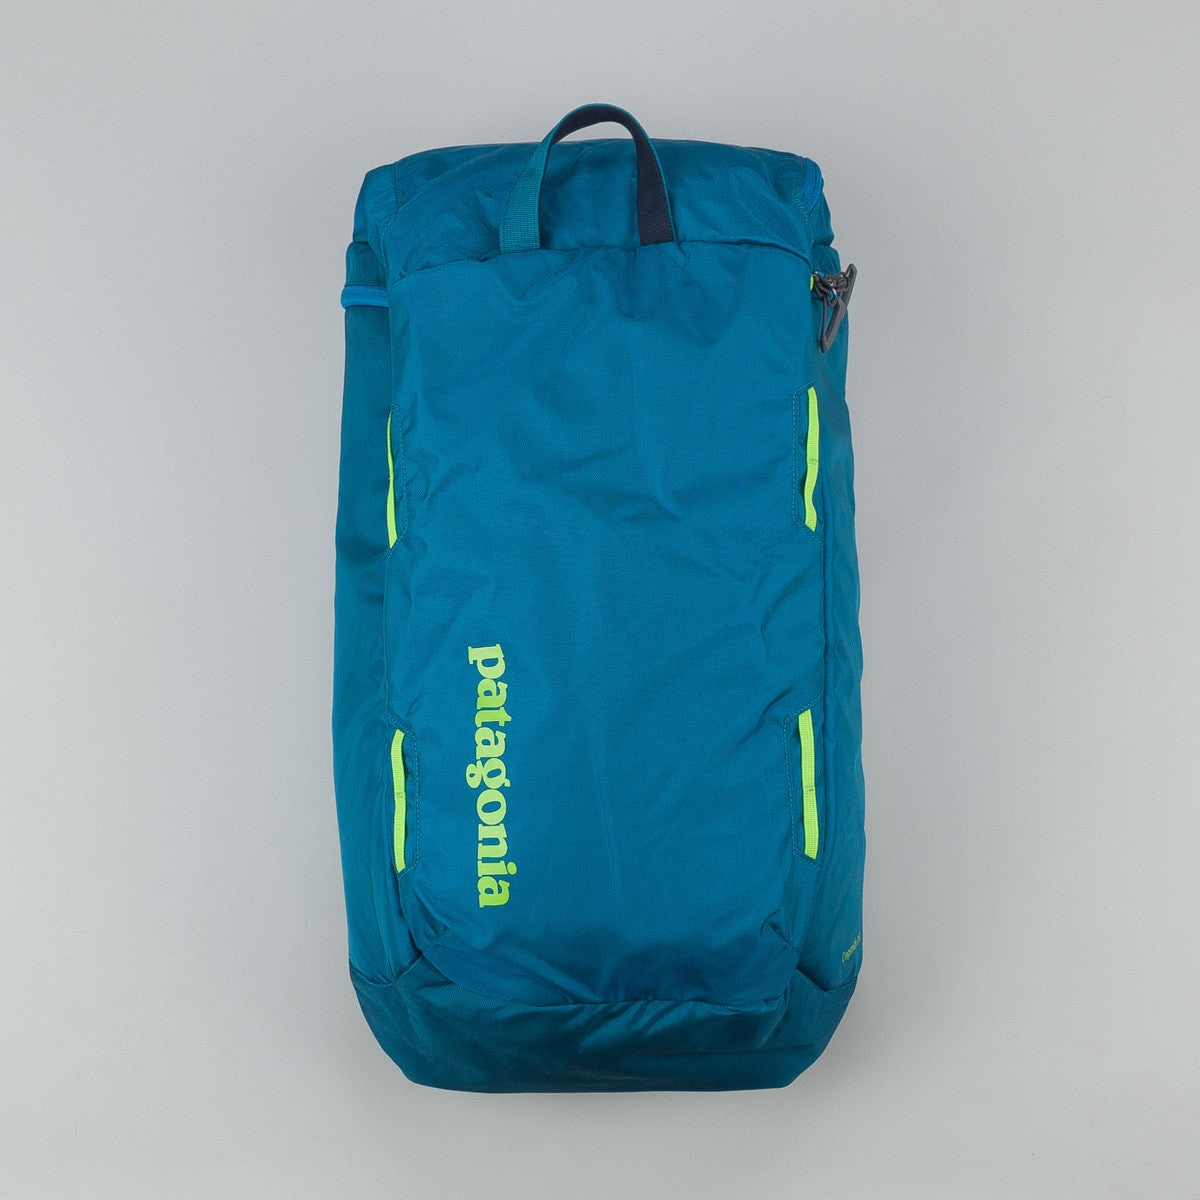 Patagonia Cragsmith Backpack 35L